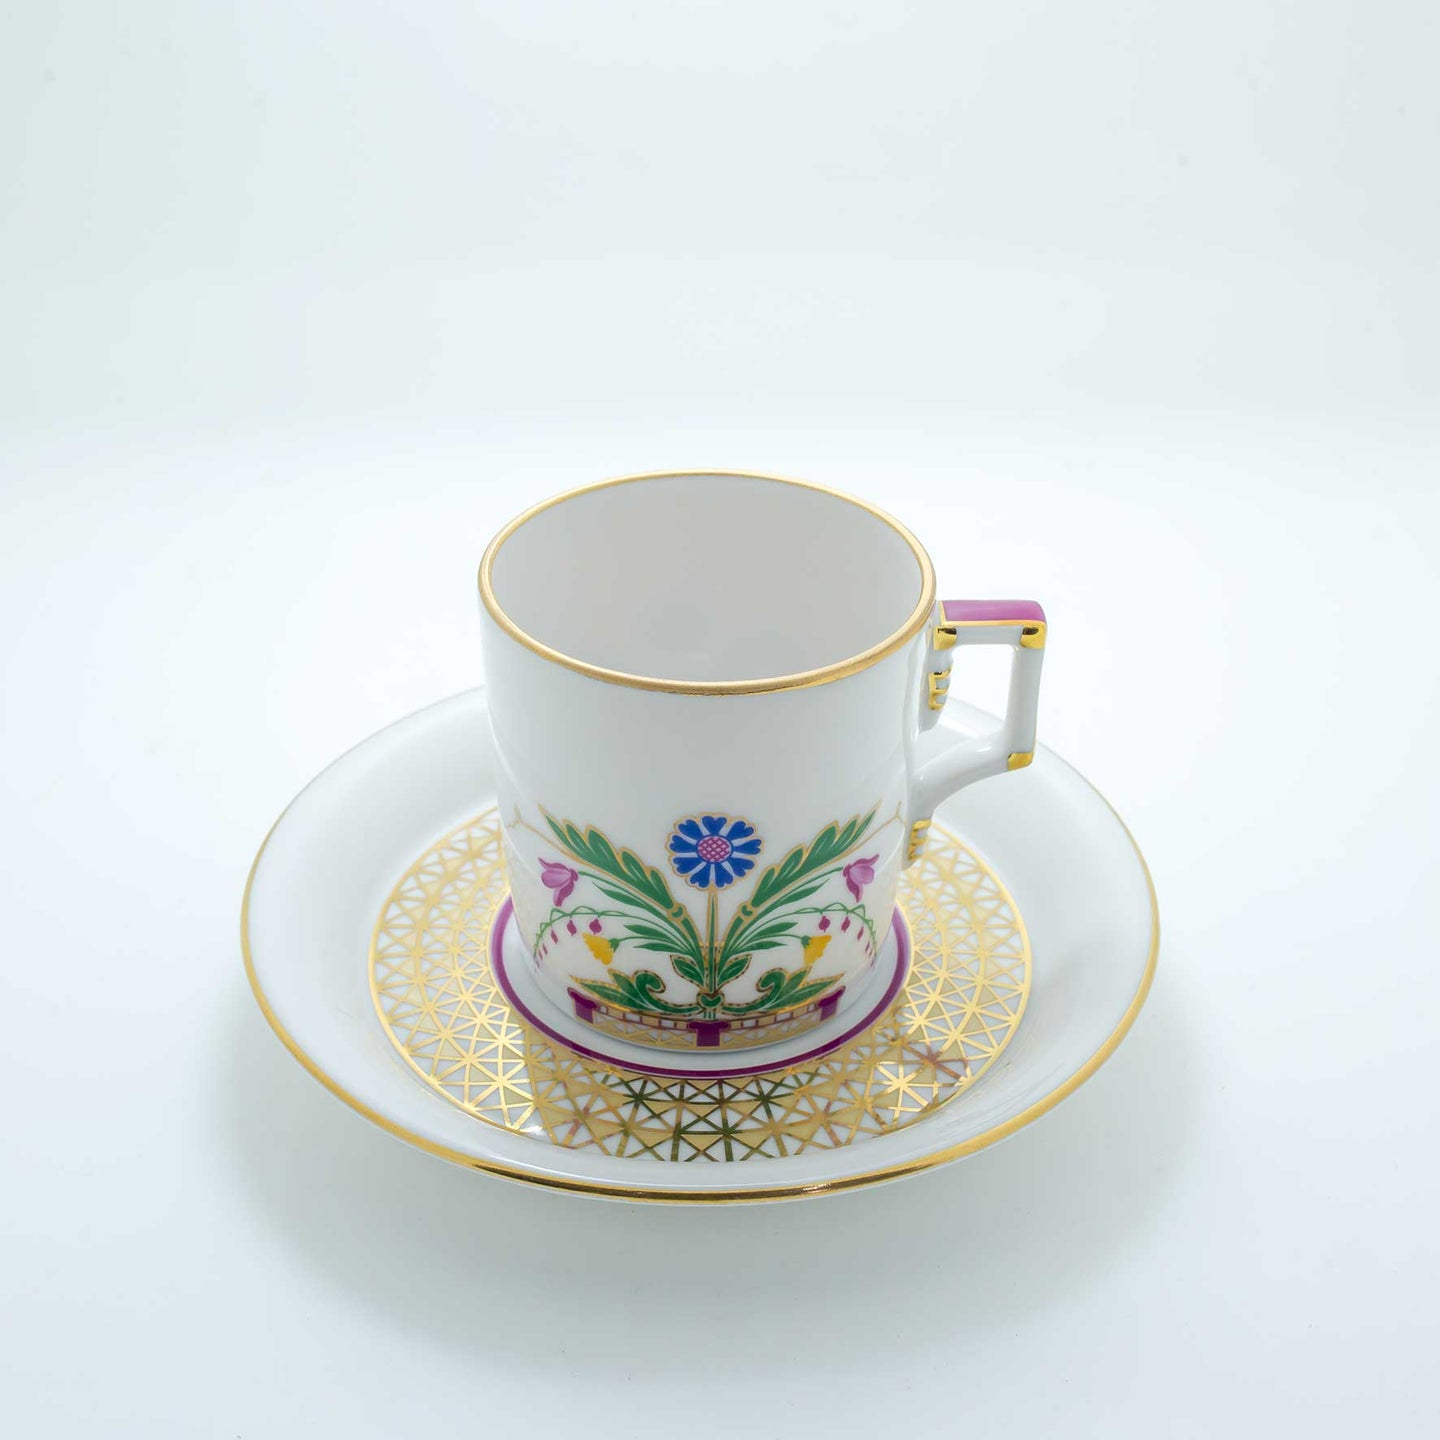 Refresh Moment Imperial Porcelain St. Petersburg 1744 The Moscow River Teacup and Saucer